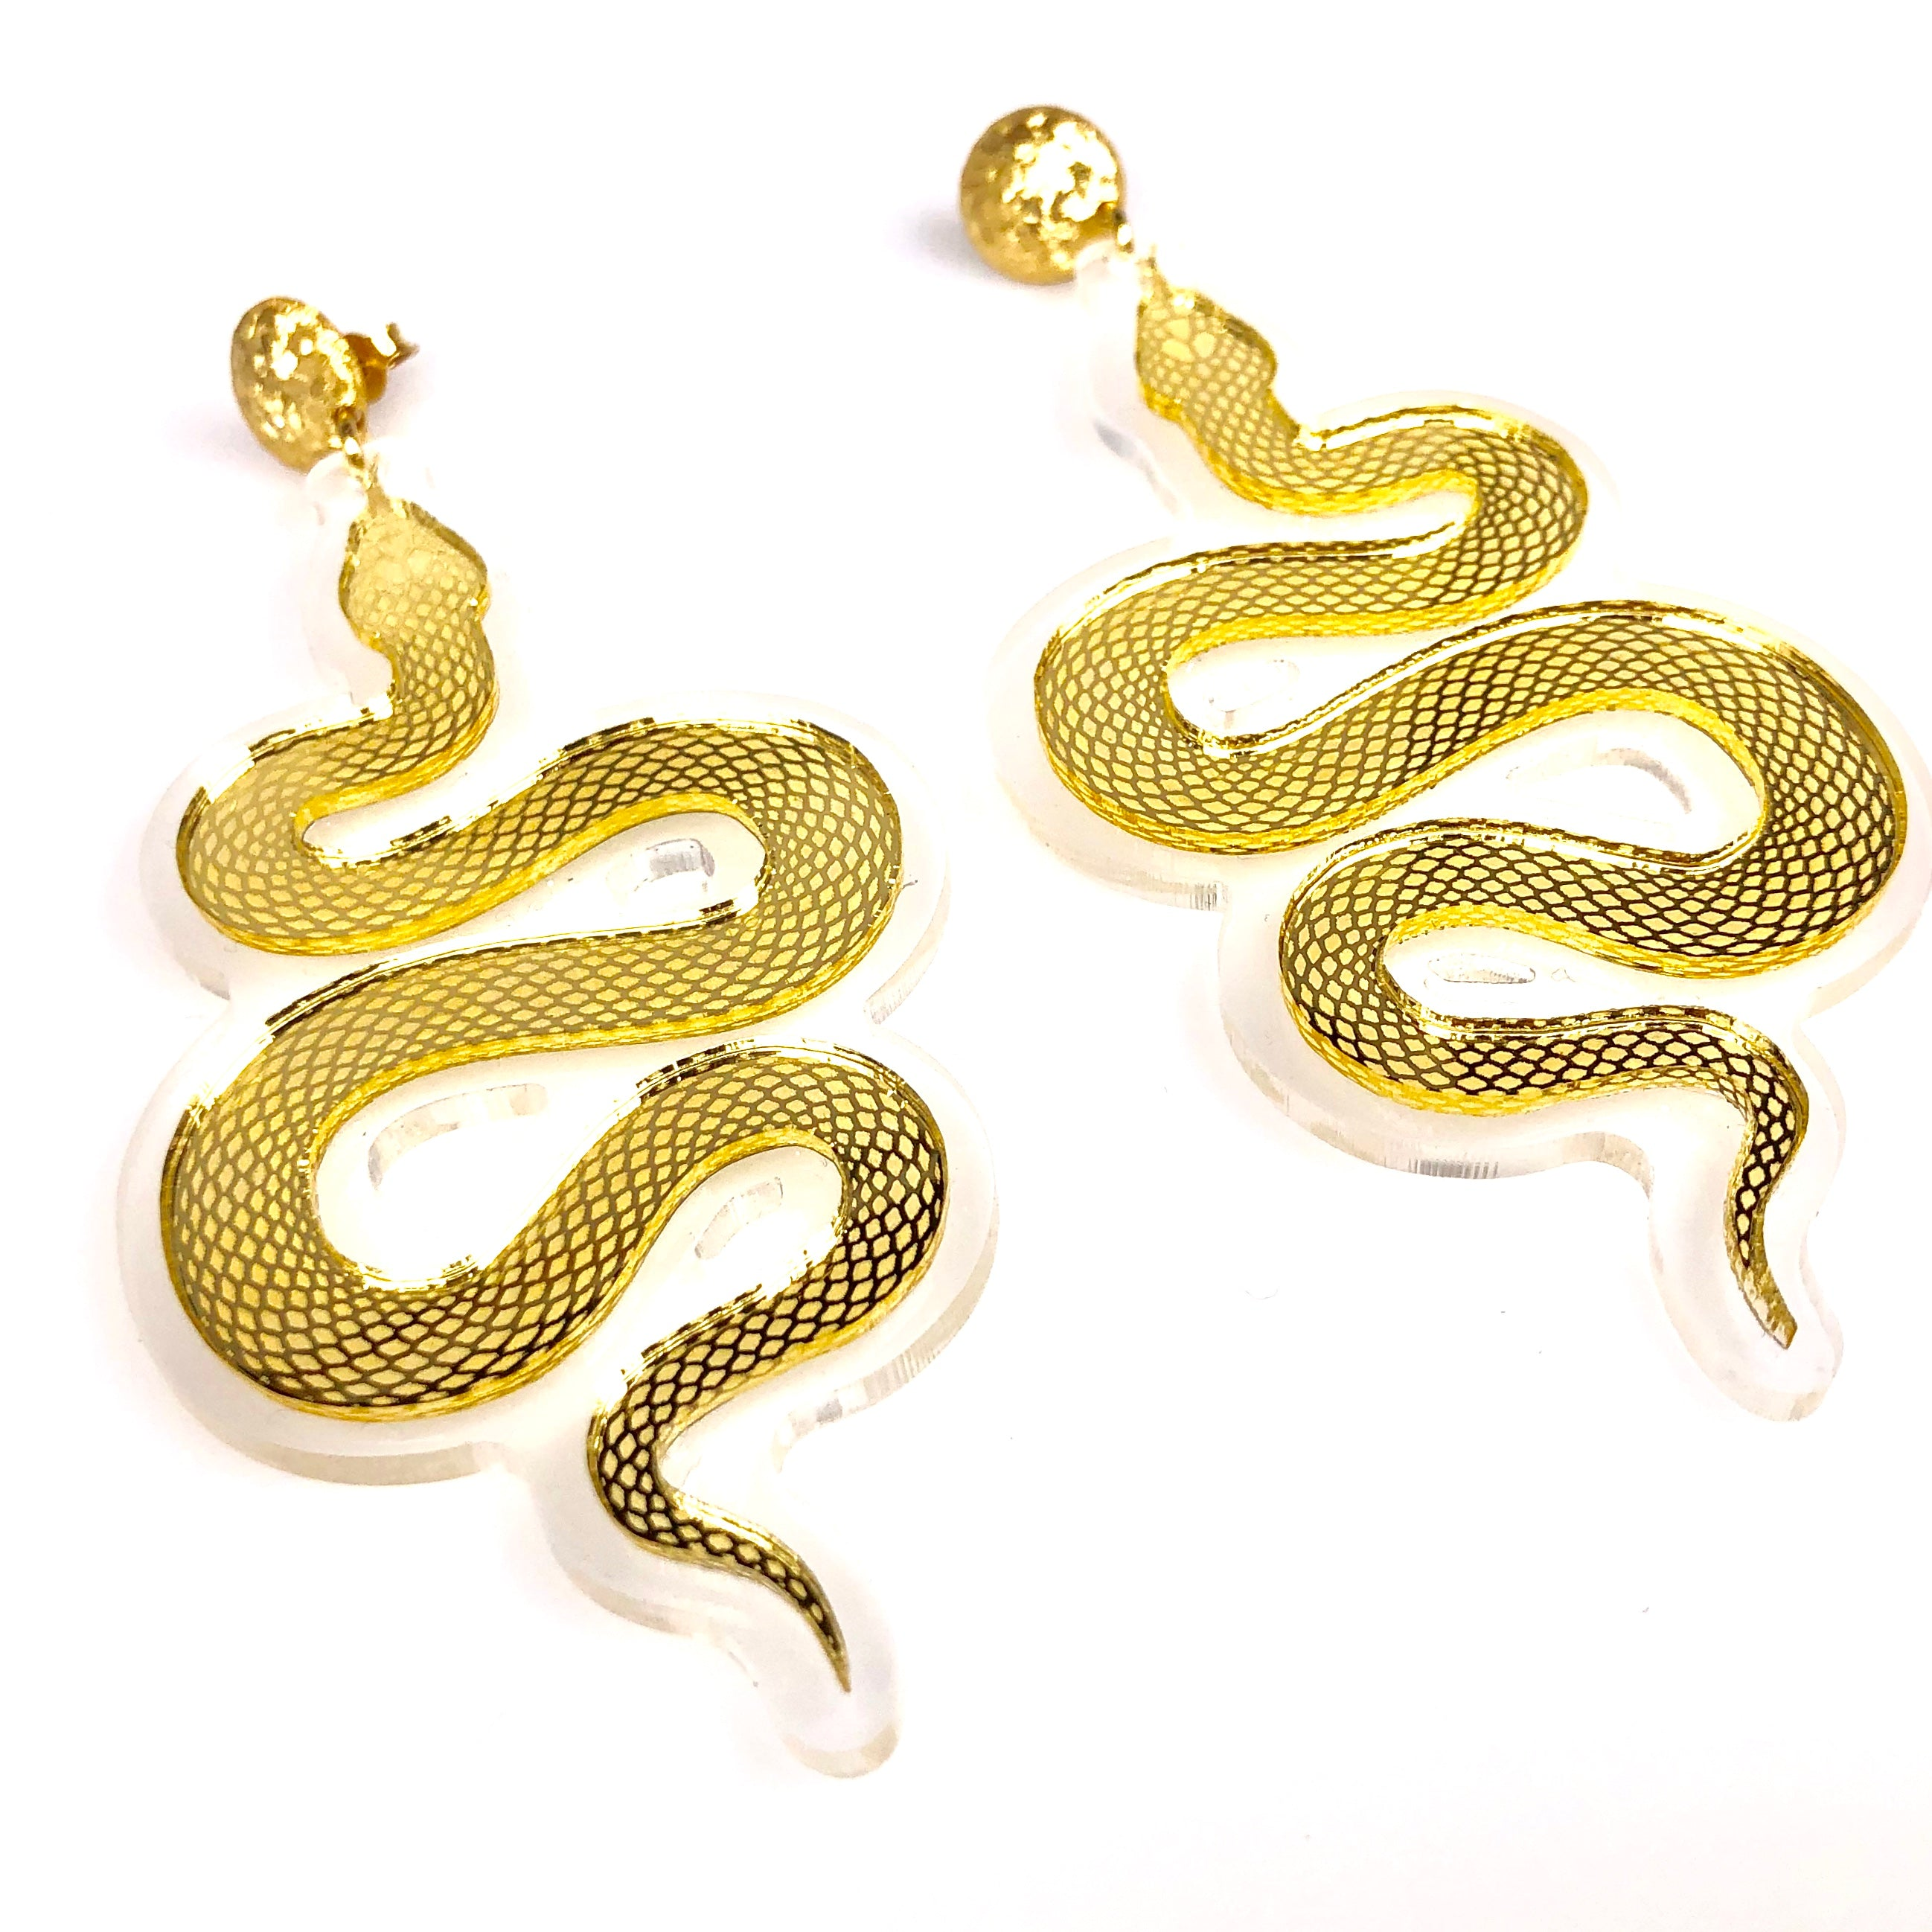 The Snake - Gold